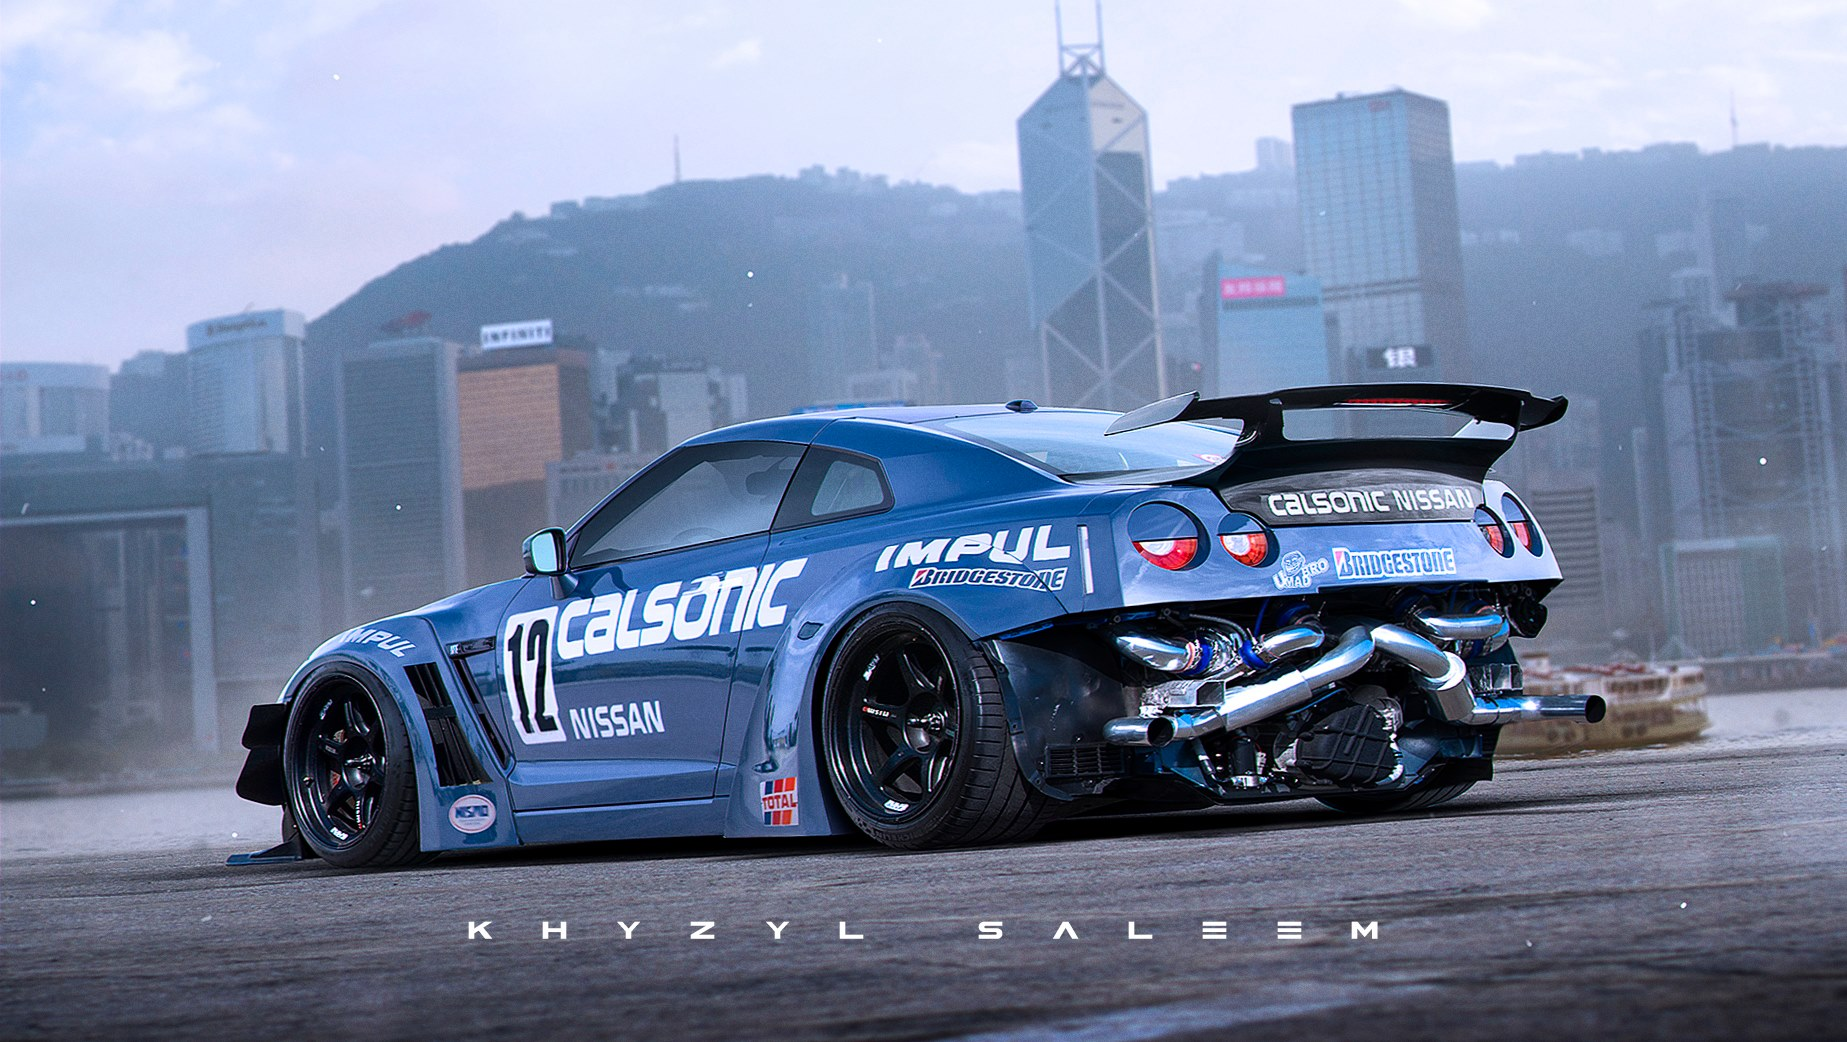 nissan-gt-r-drift-car-with-exposed-rear-mounted-turbos-rendered-should-happen-104936_1